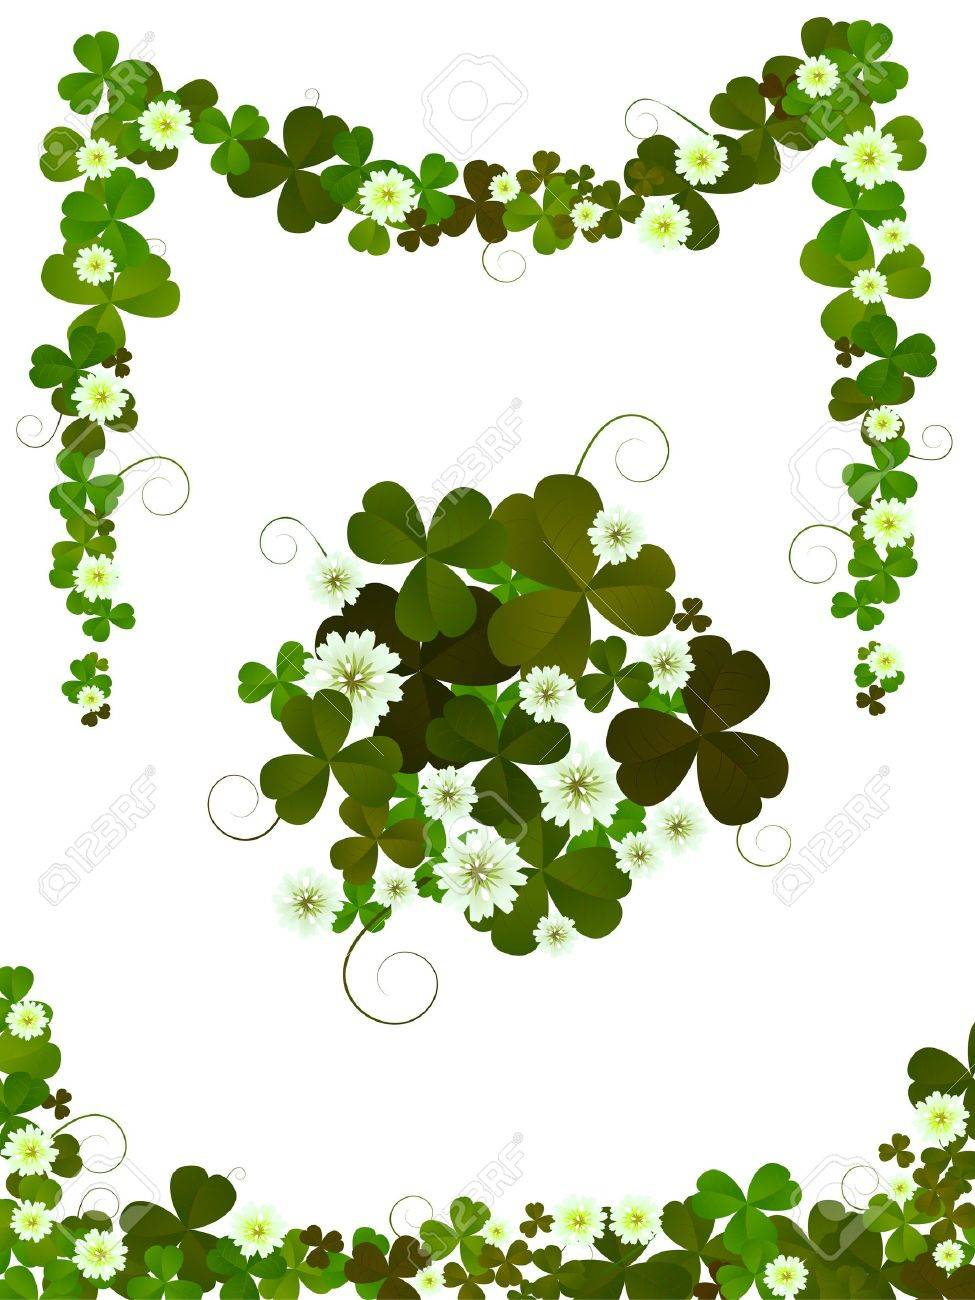 Decorative clover design elements for St.Patrick's Day layouts  against white background Stock Vector - 8901017